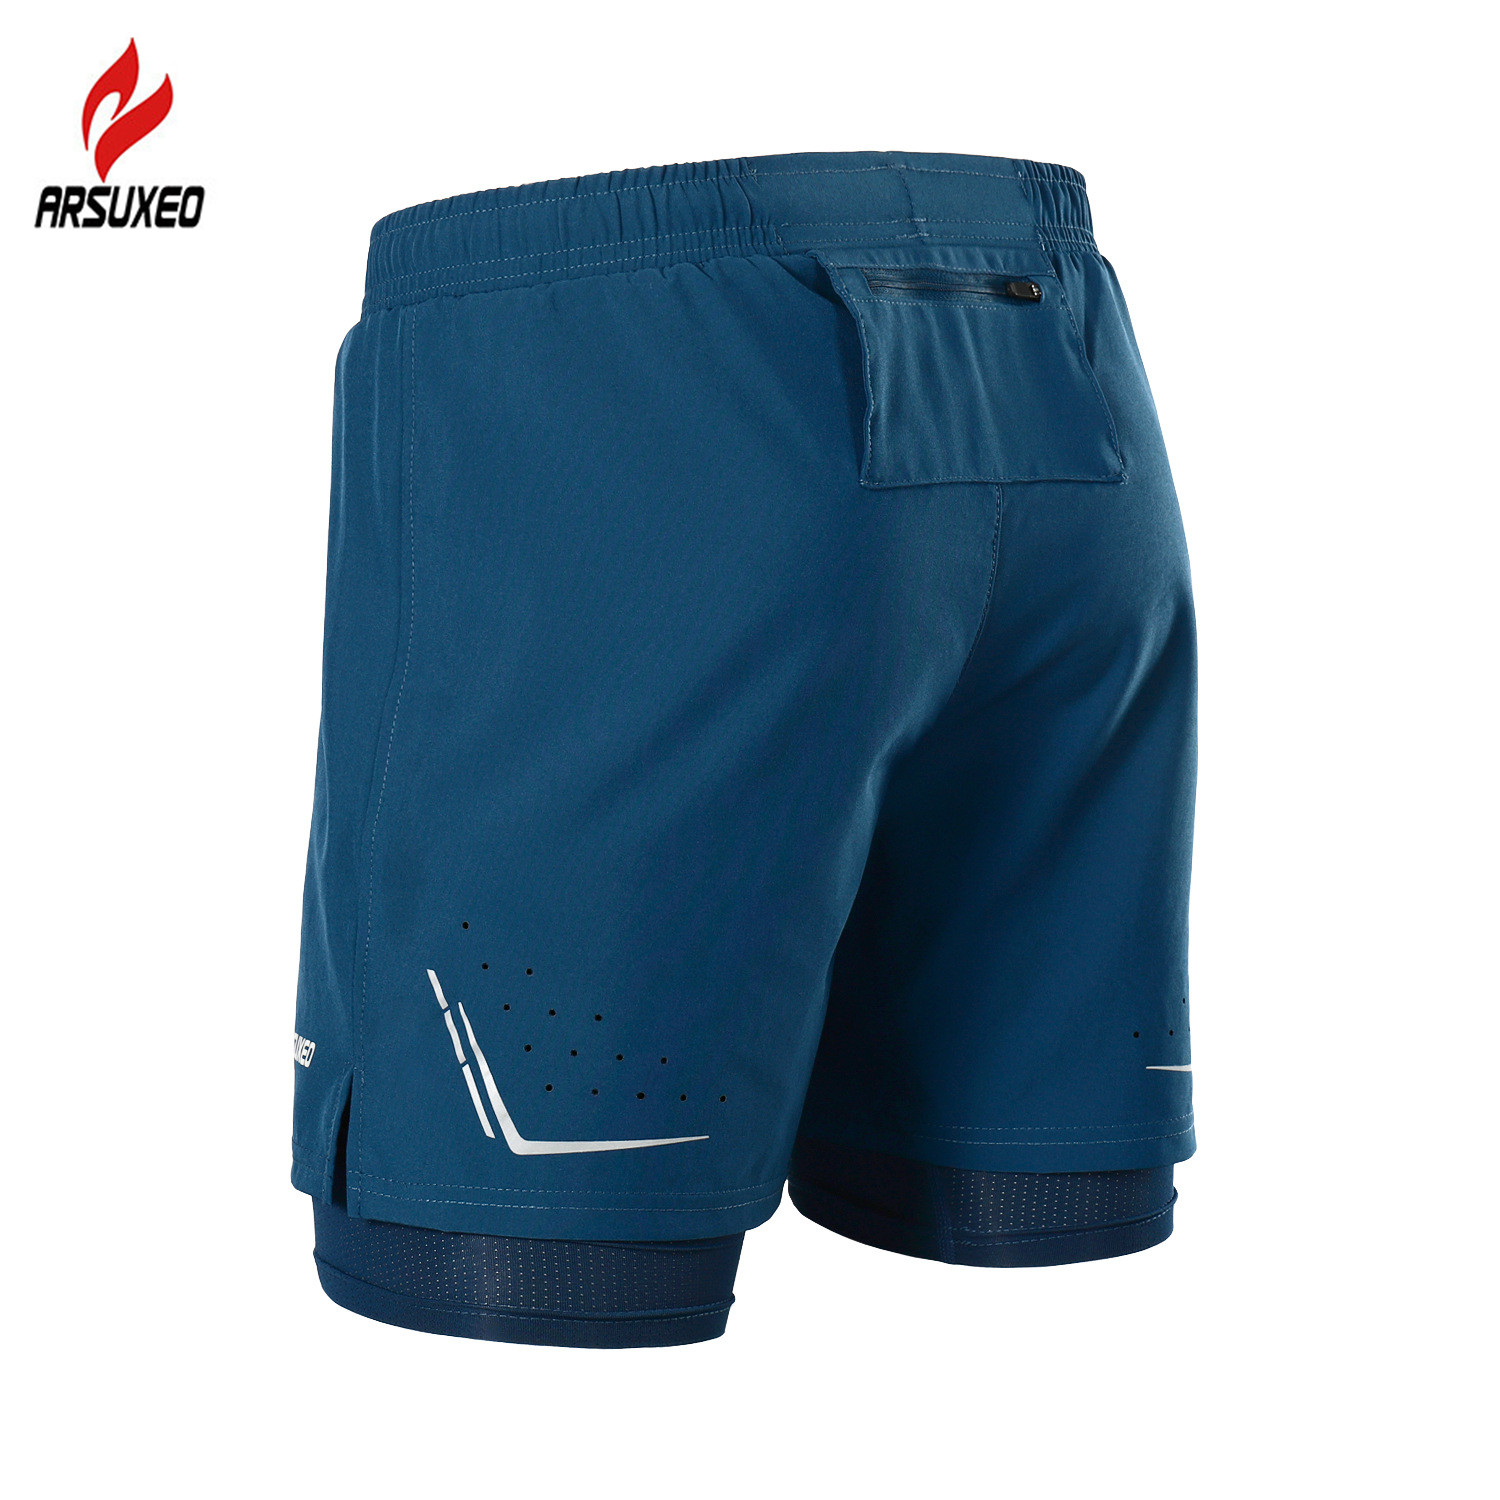 ARSUXEO 2 In 1 Men Running Shorts Reflective Quick Dry Compression Jogging Gym Fitness Marathon Sport Shorts With Zipper Pocket